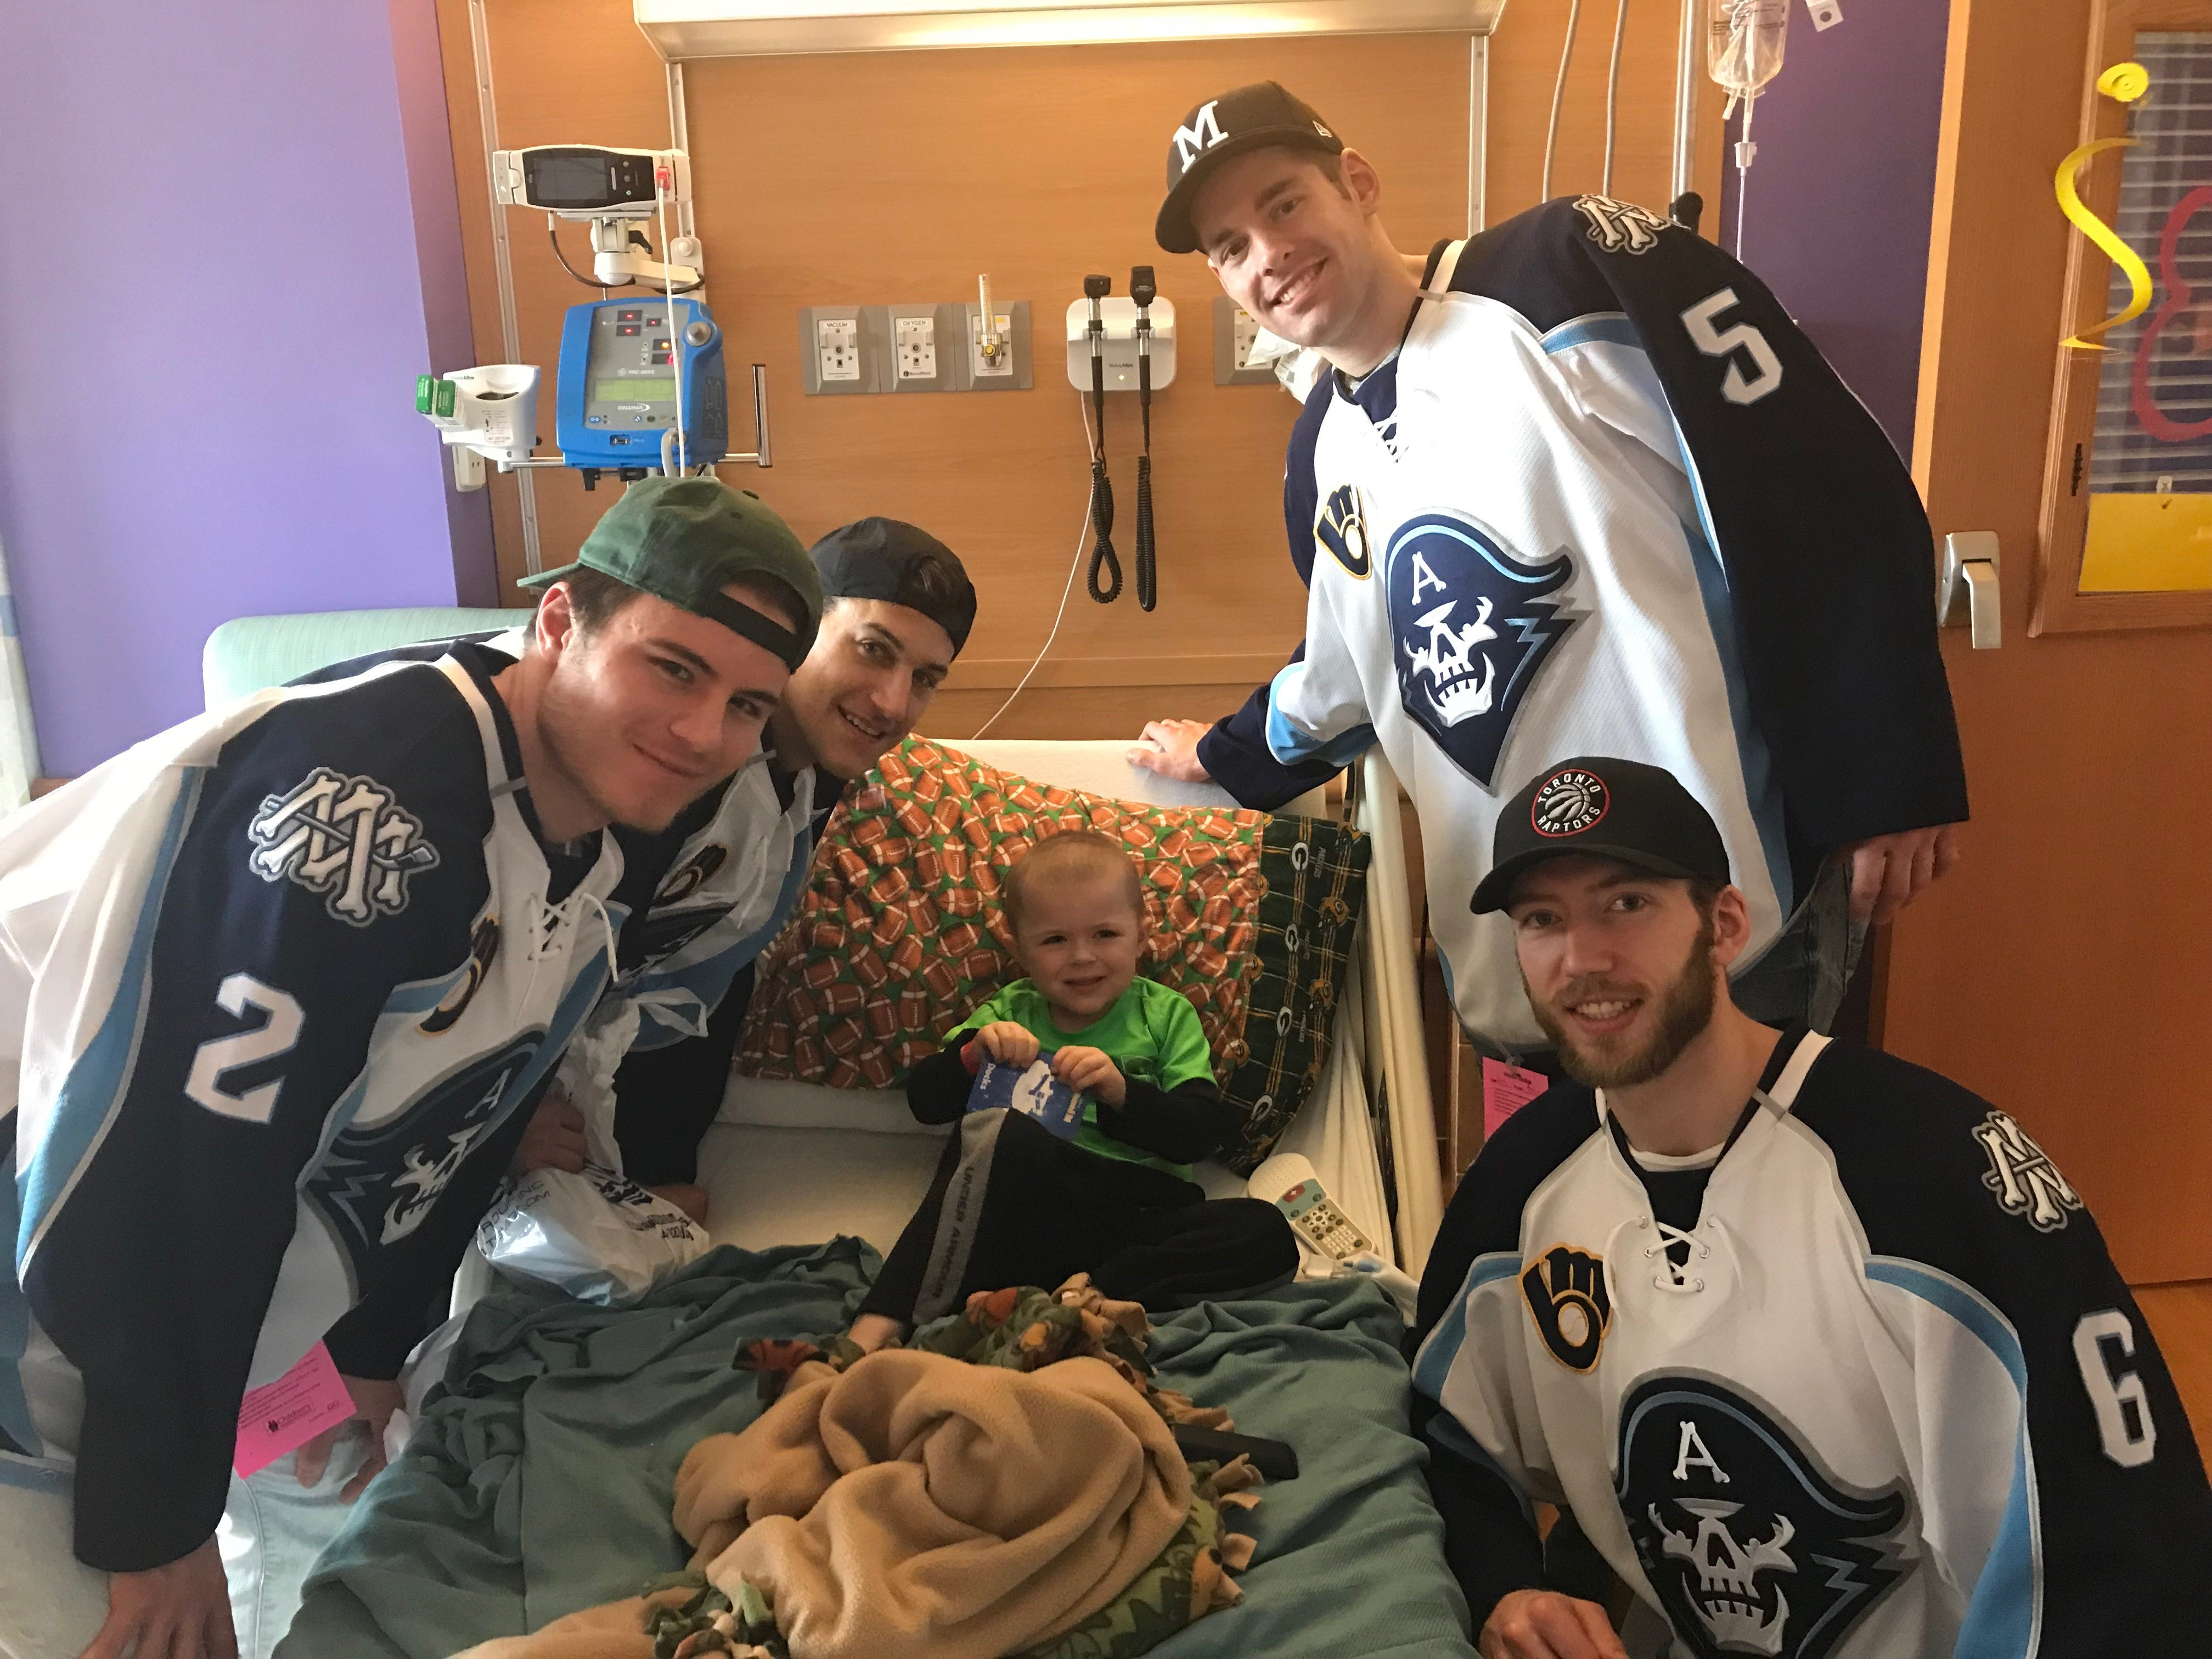 Some members of the Milwaukee Admirals visit Lincoln Maziasz during his leukemia treatment.